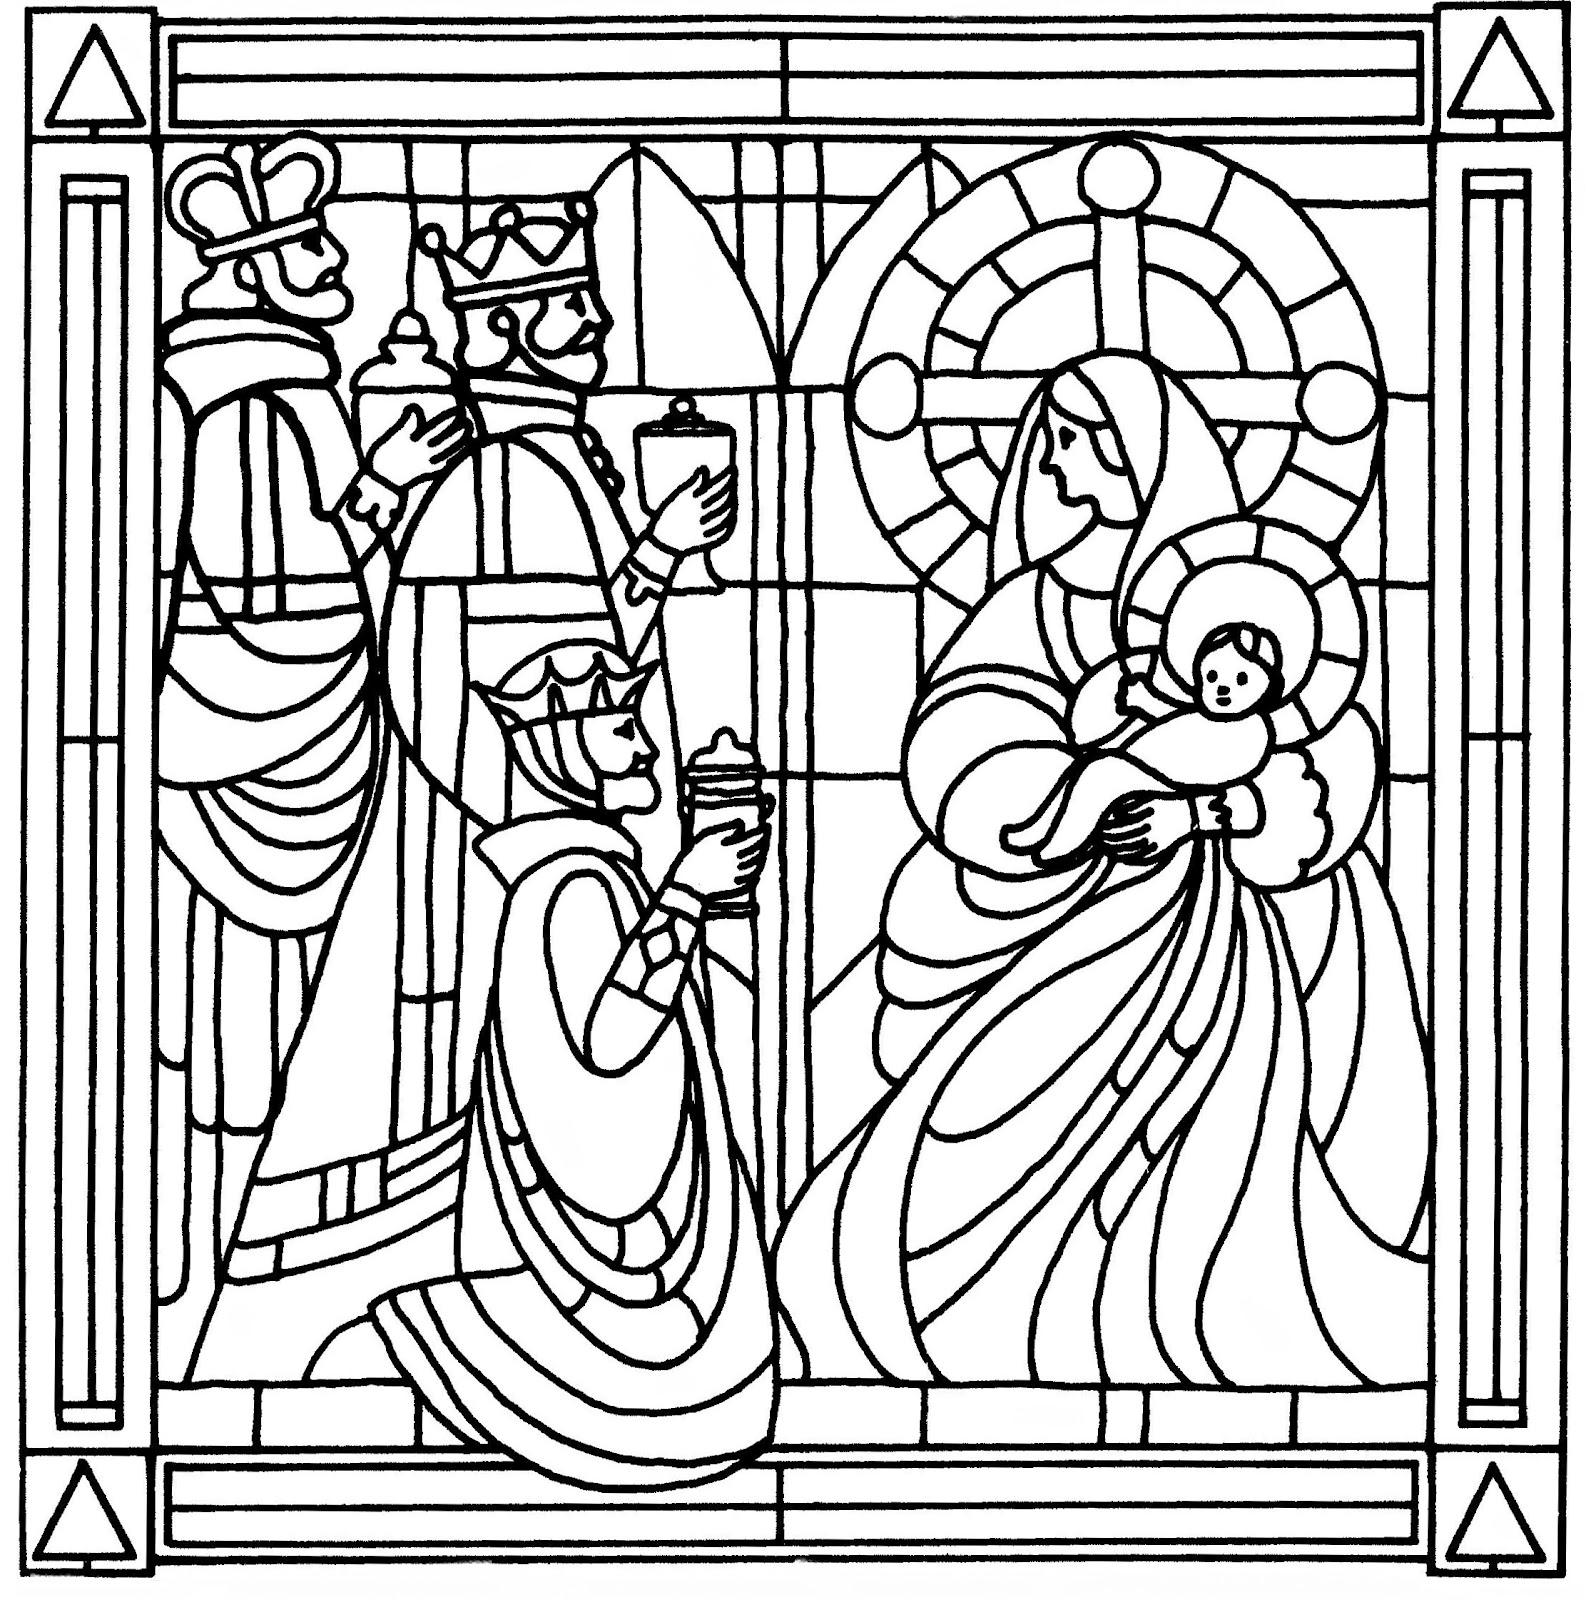 Mostly paper dolls september 2012 for Stained glass window coloring pages